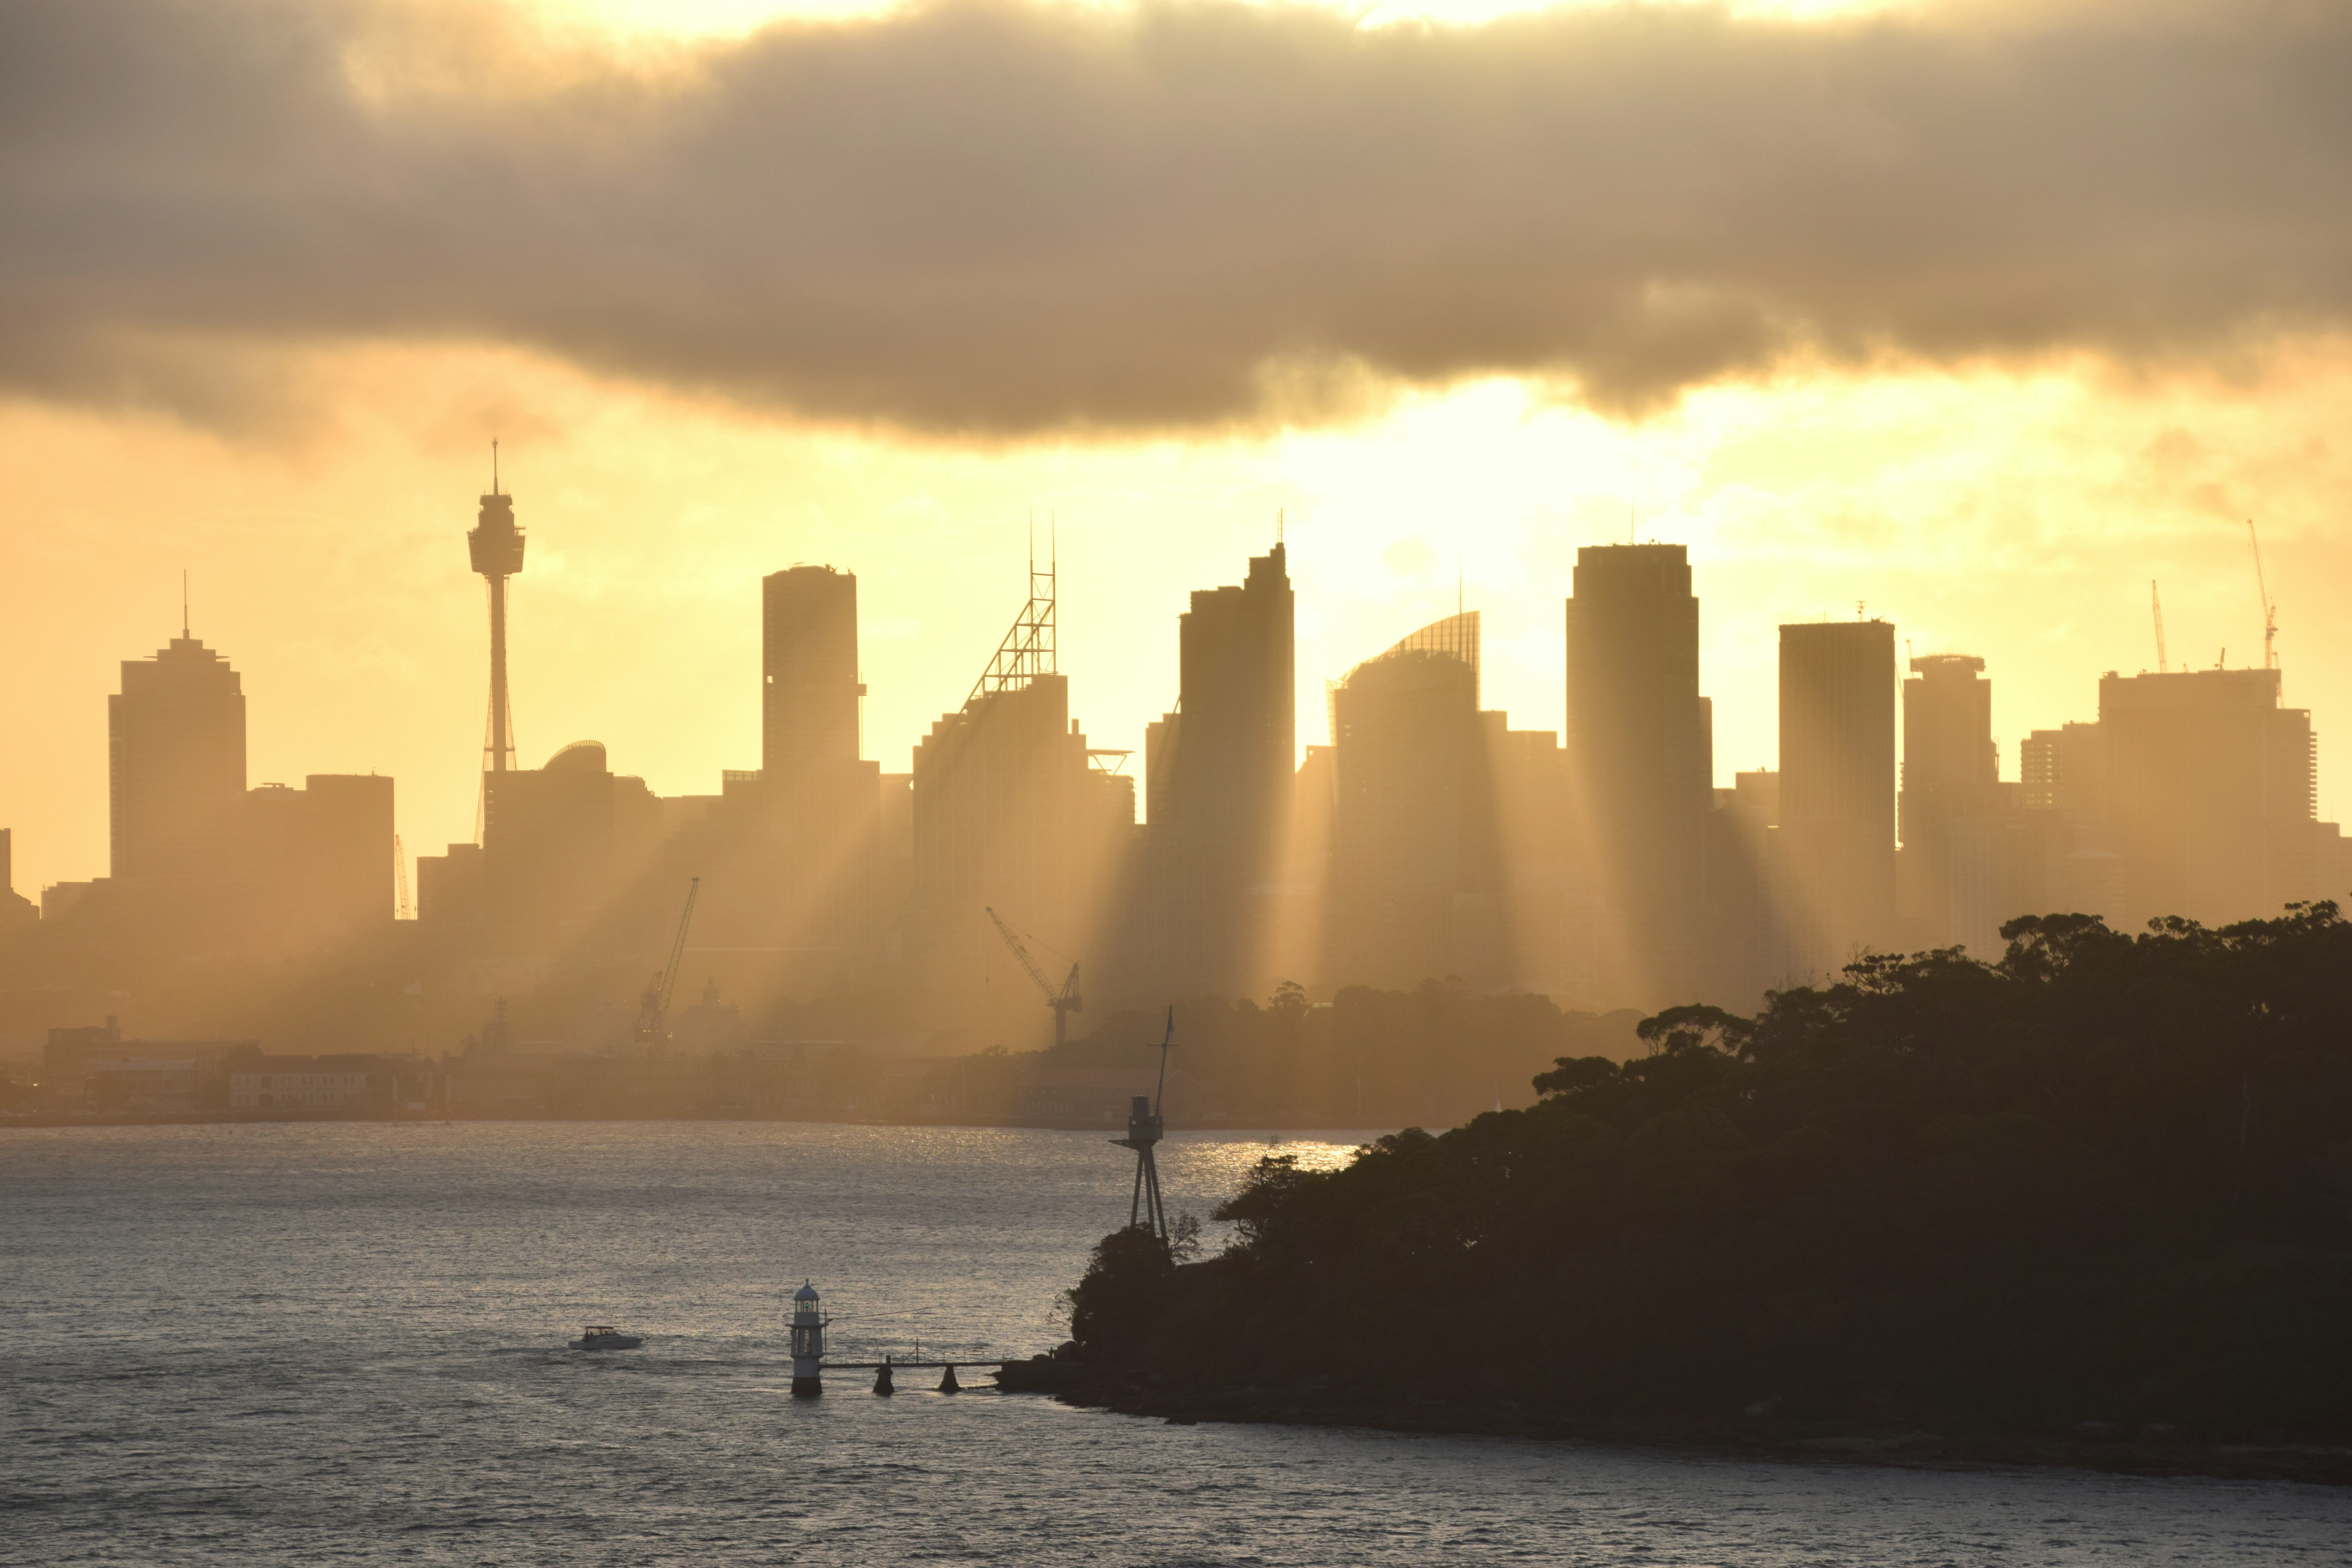 Watching the sun setting over Sydney from Explorer of the Sea